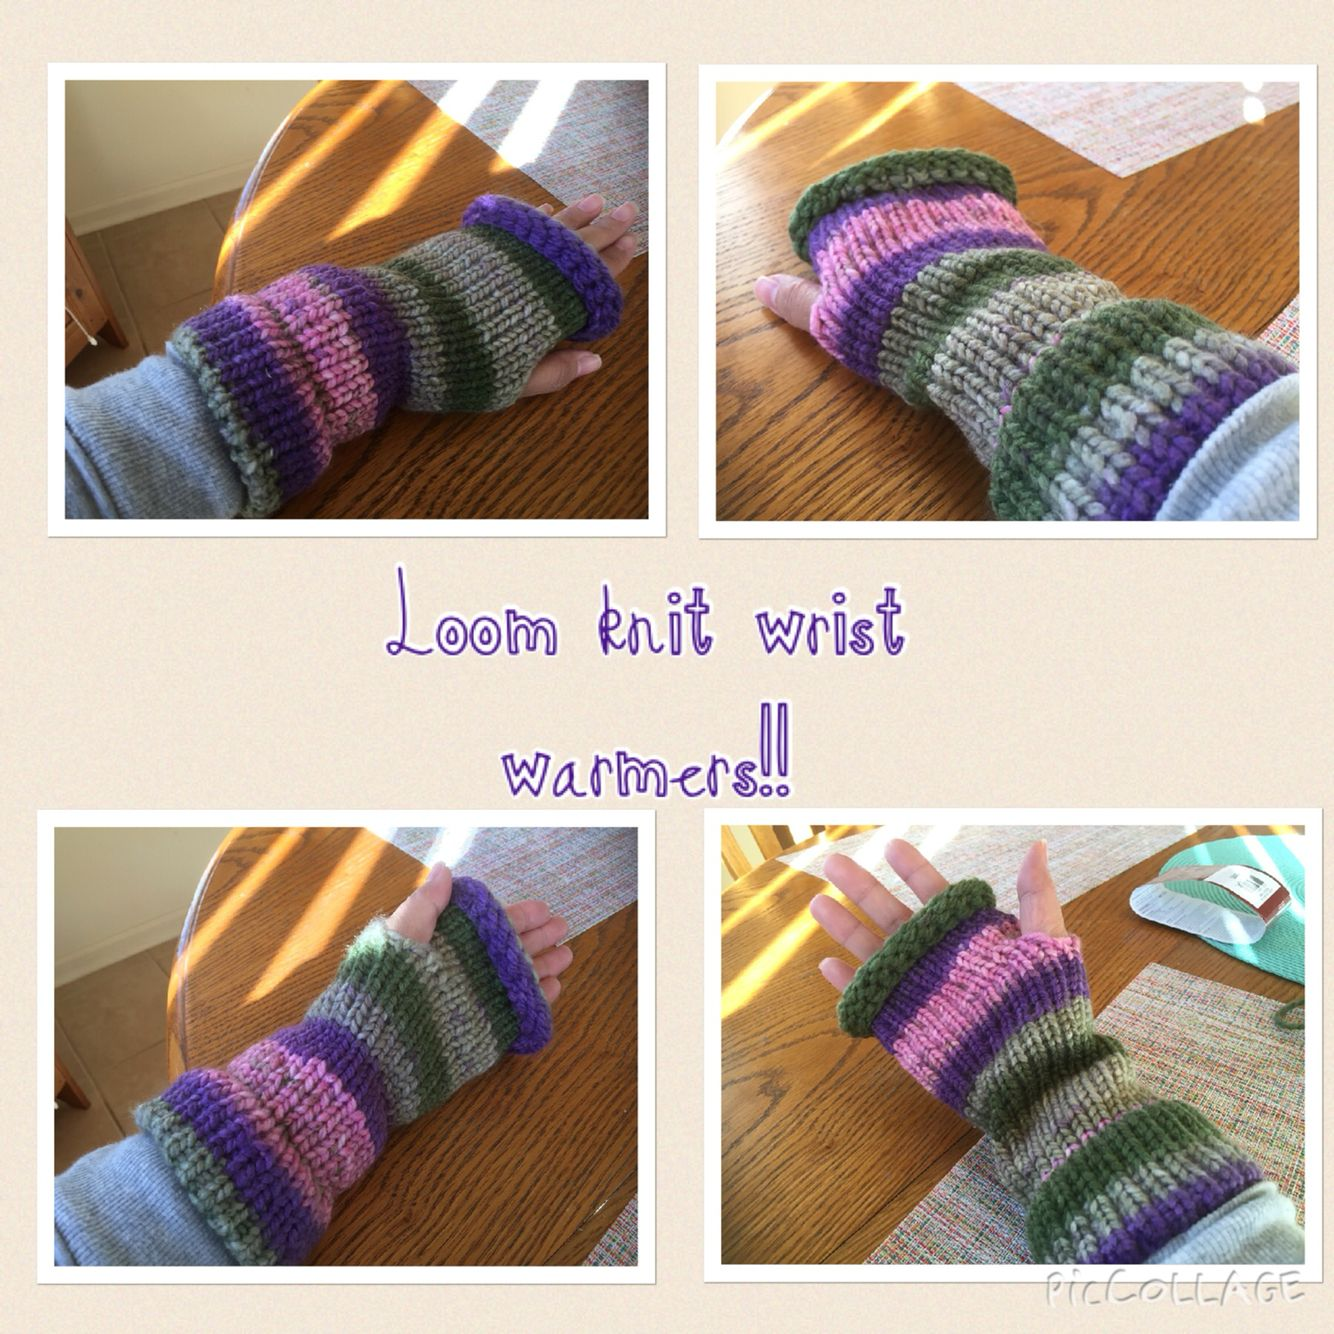 Loom knit wrist warmers!!! Thanks to Tuteate (www.tuteate.com) for ...